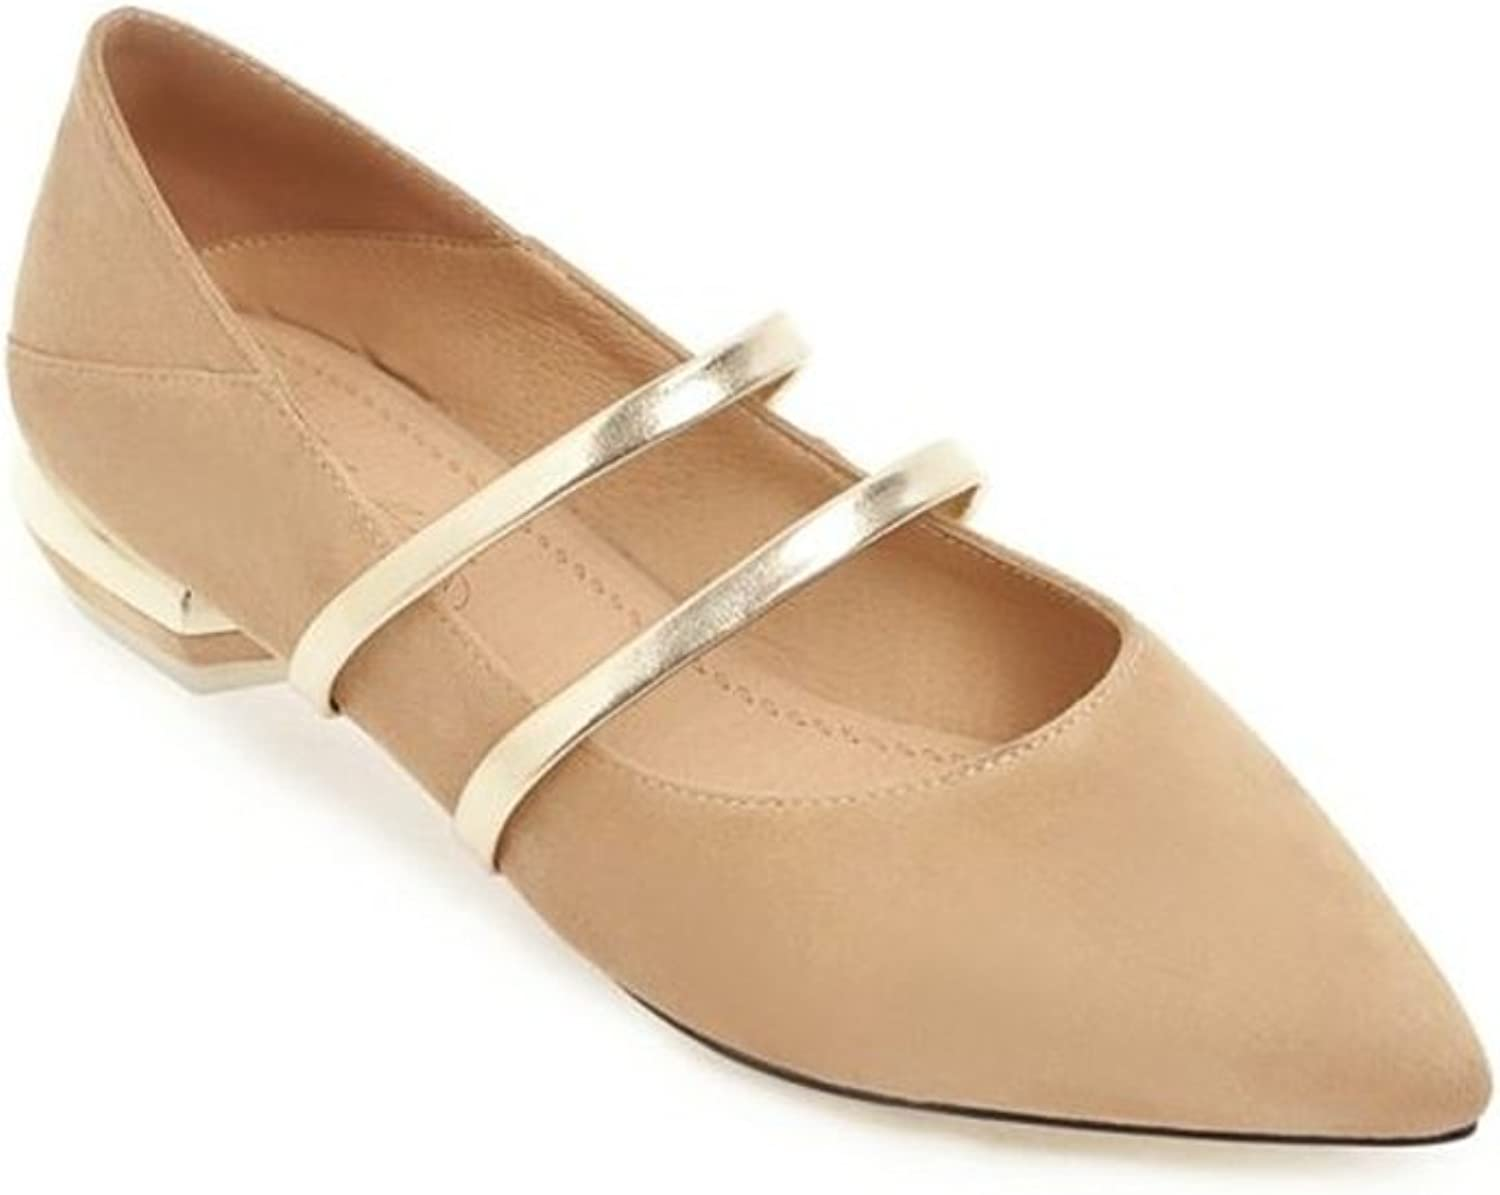 Fancyww Women's Classic Pointy Toe Ballet Flat Suede Comfort Flats shoes